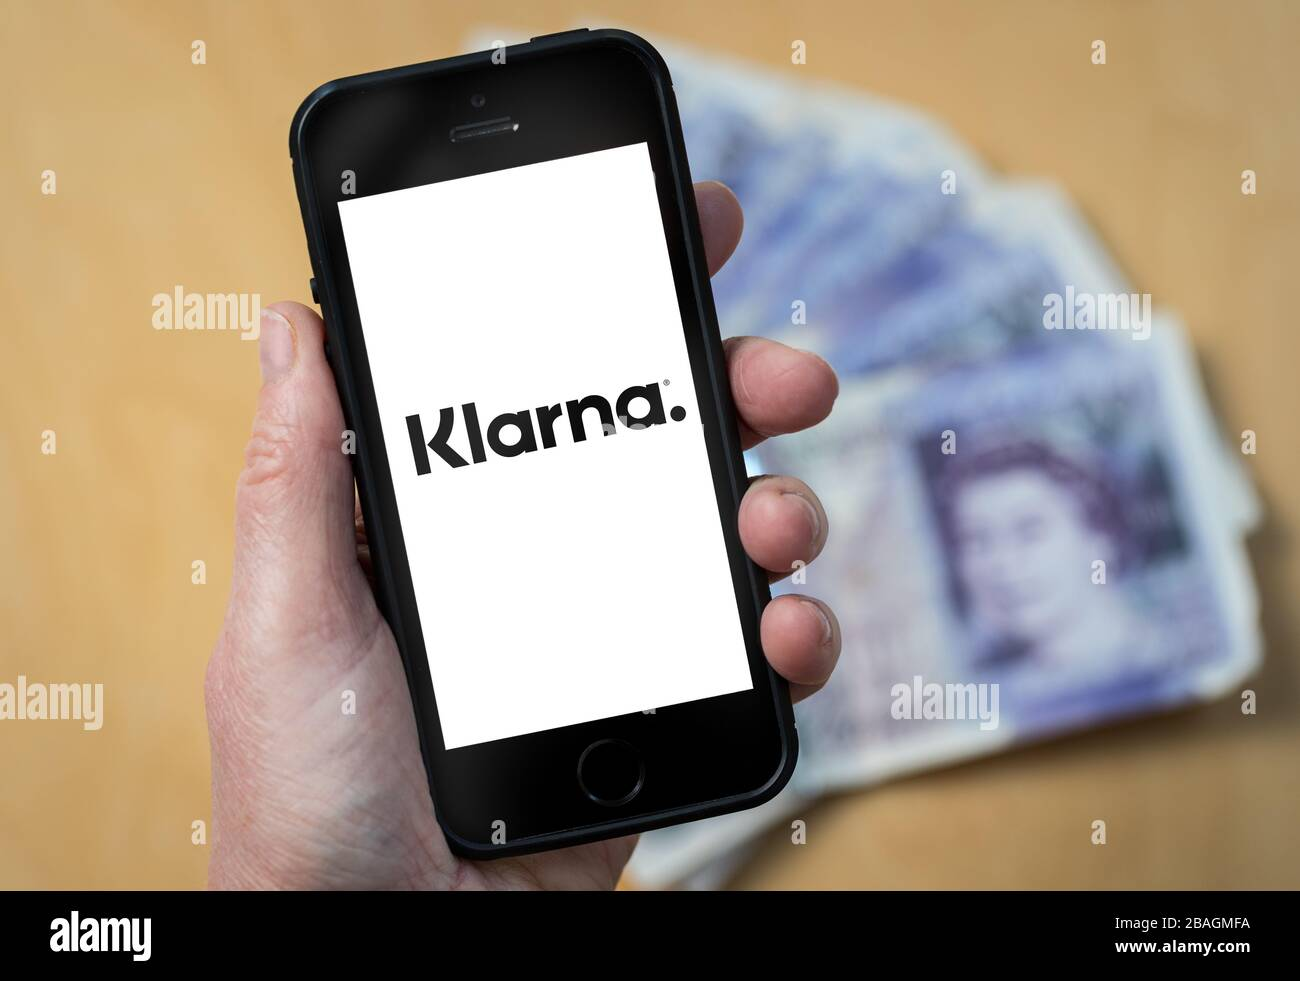 Klarna Bank High Resolution Stock Photography and Images   Alamy